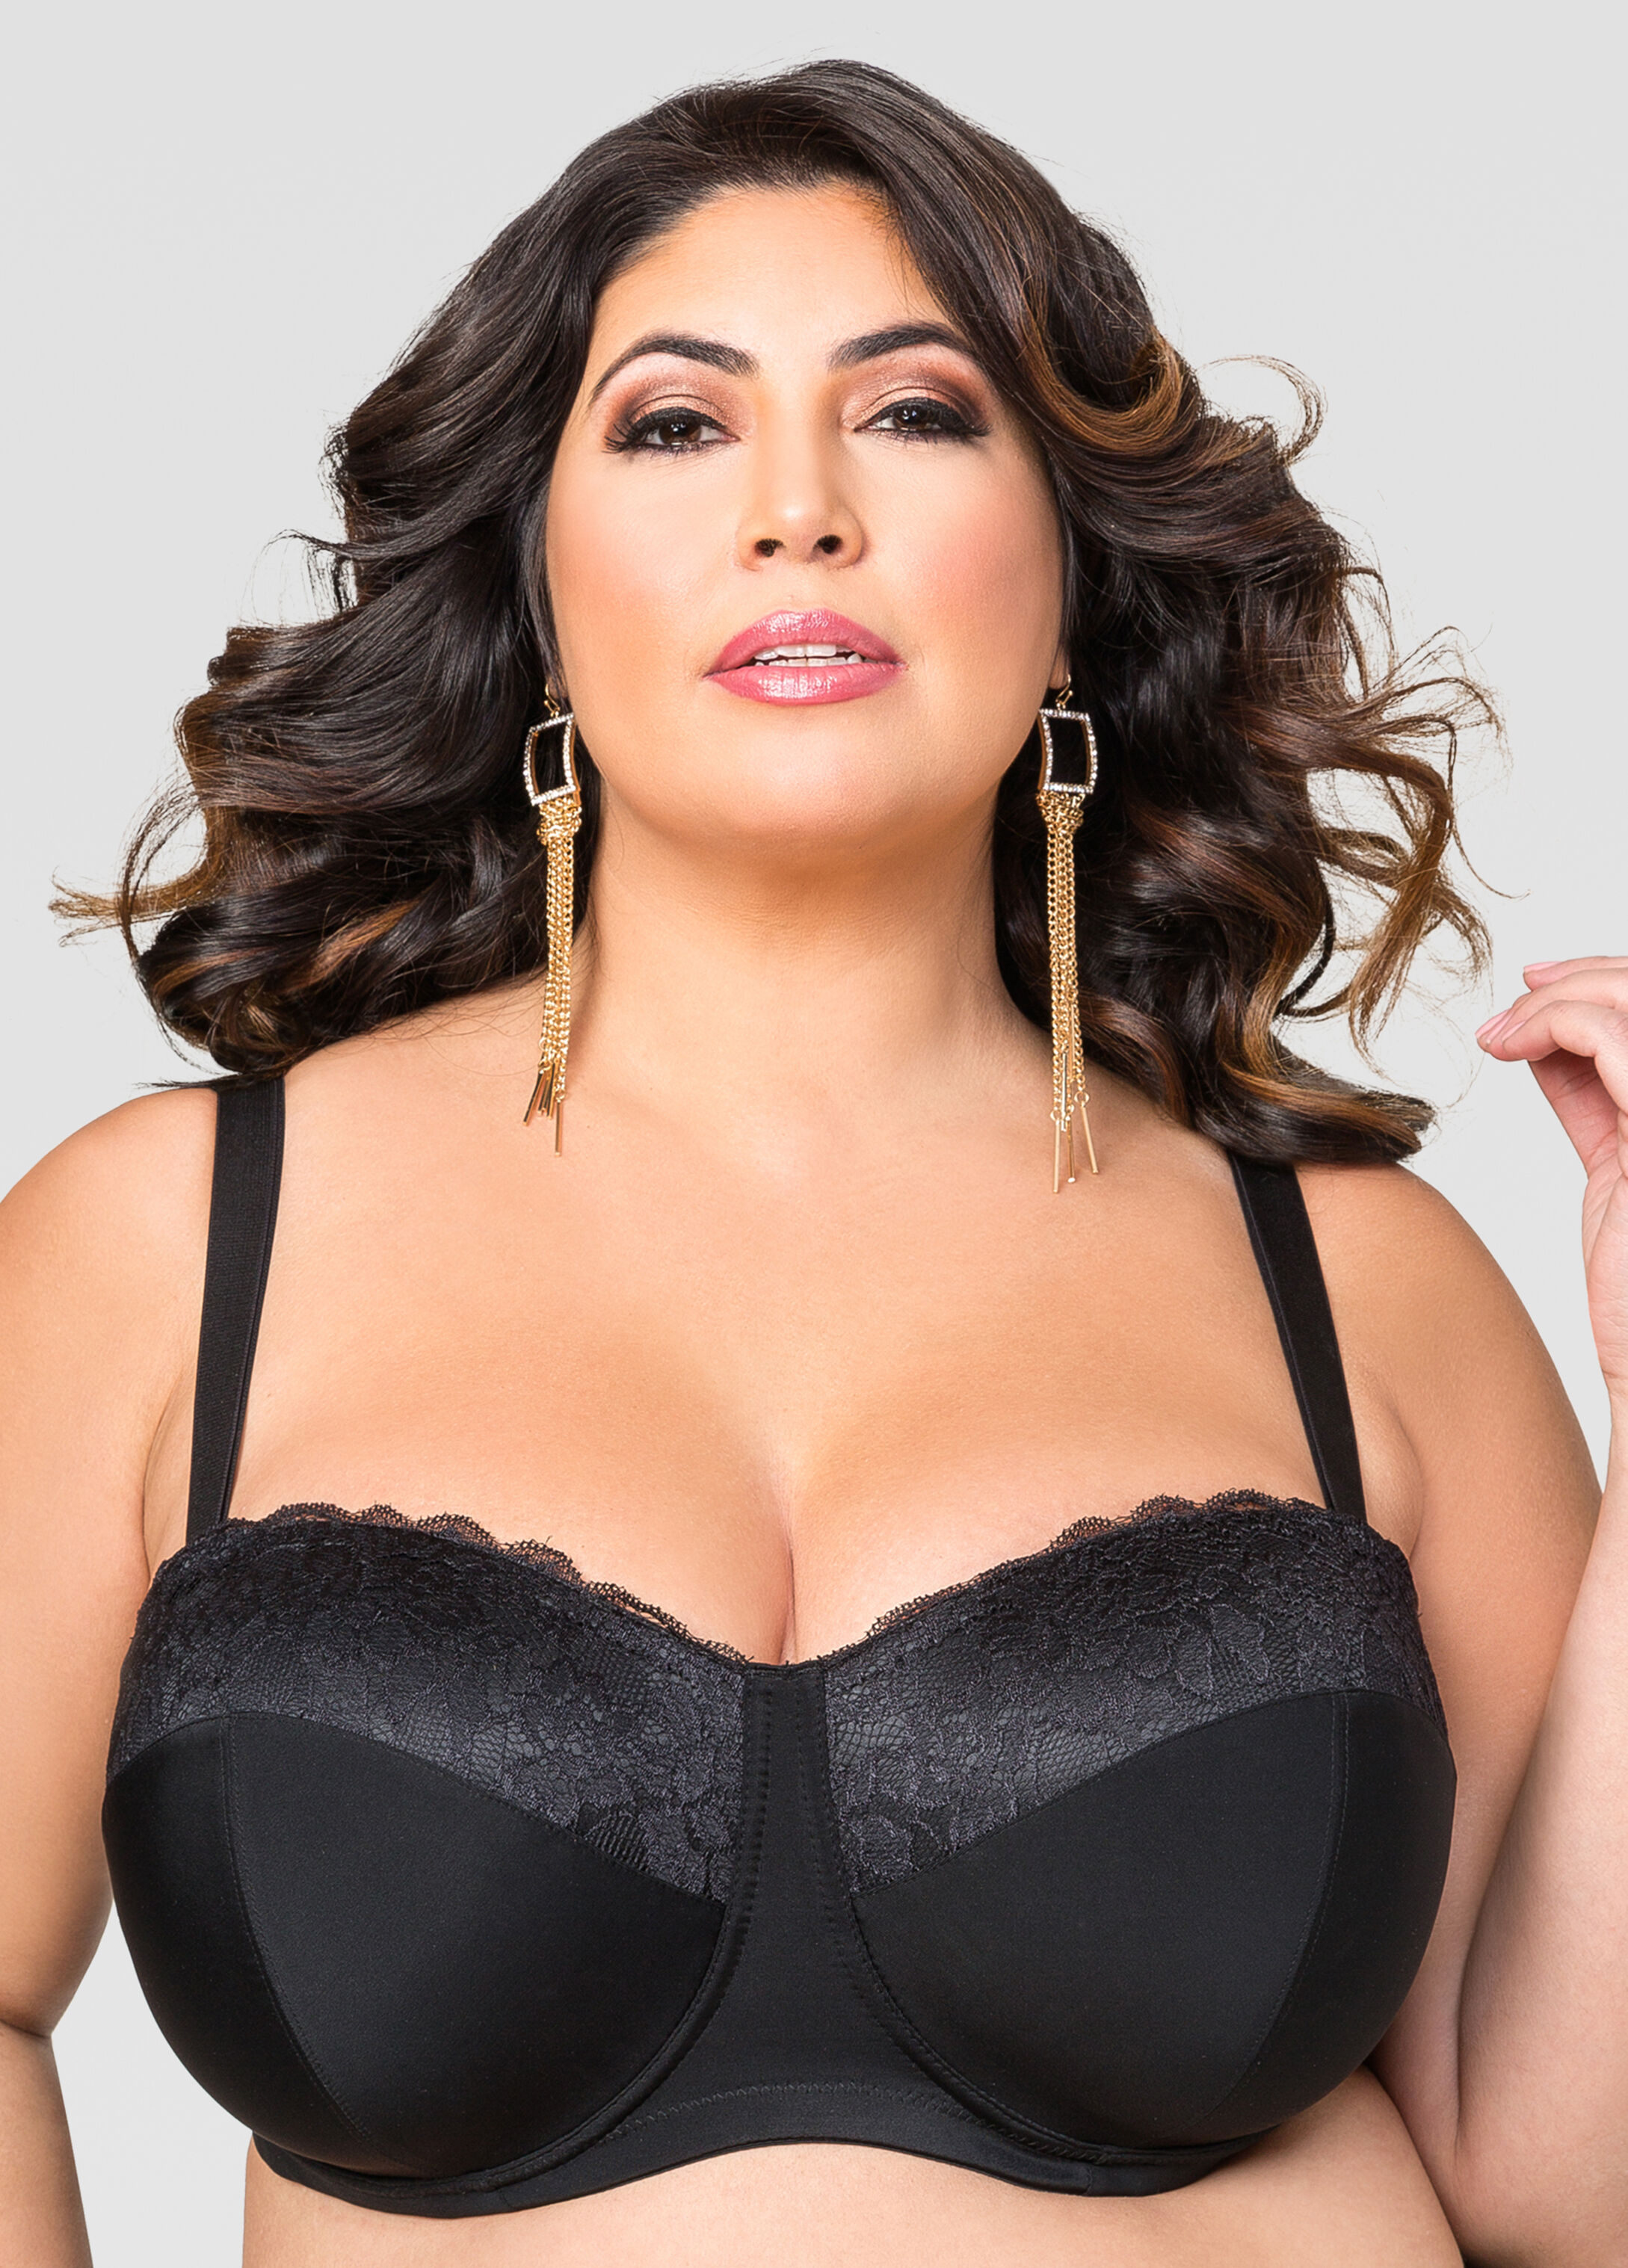 Buy Extra Large Extended Size Bras - Ashley Stewart